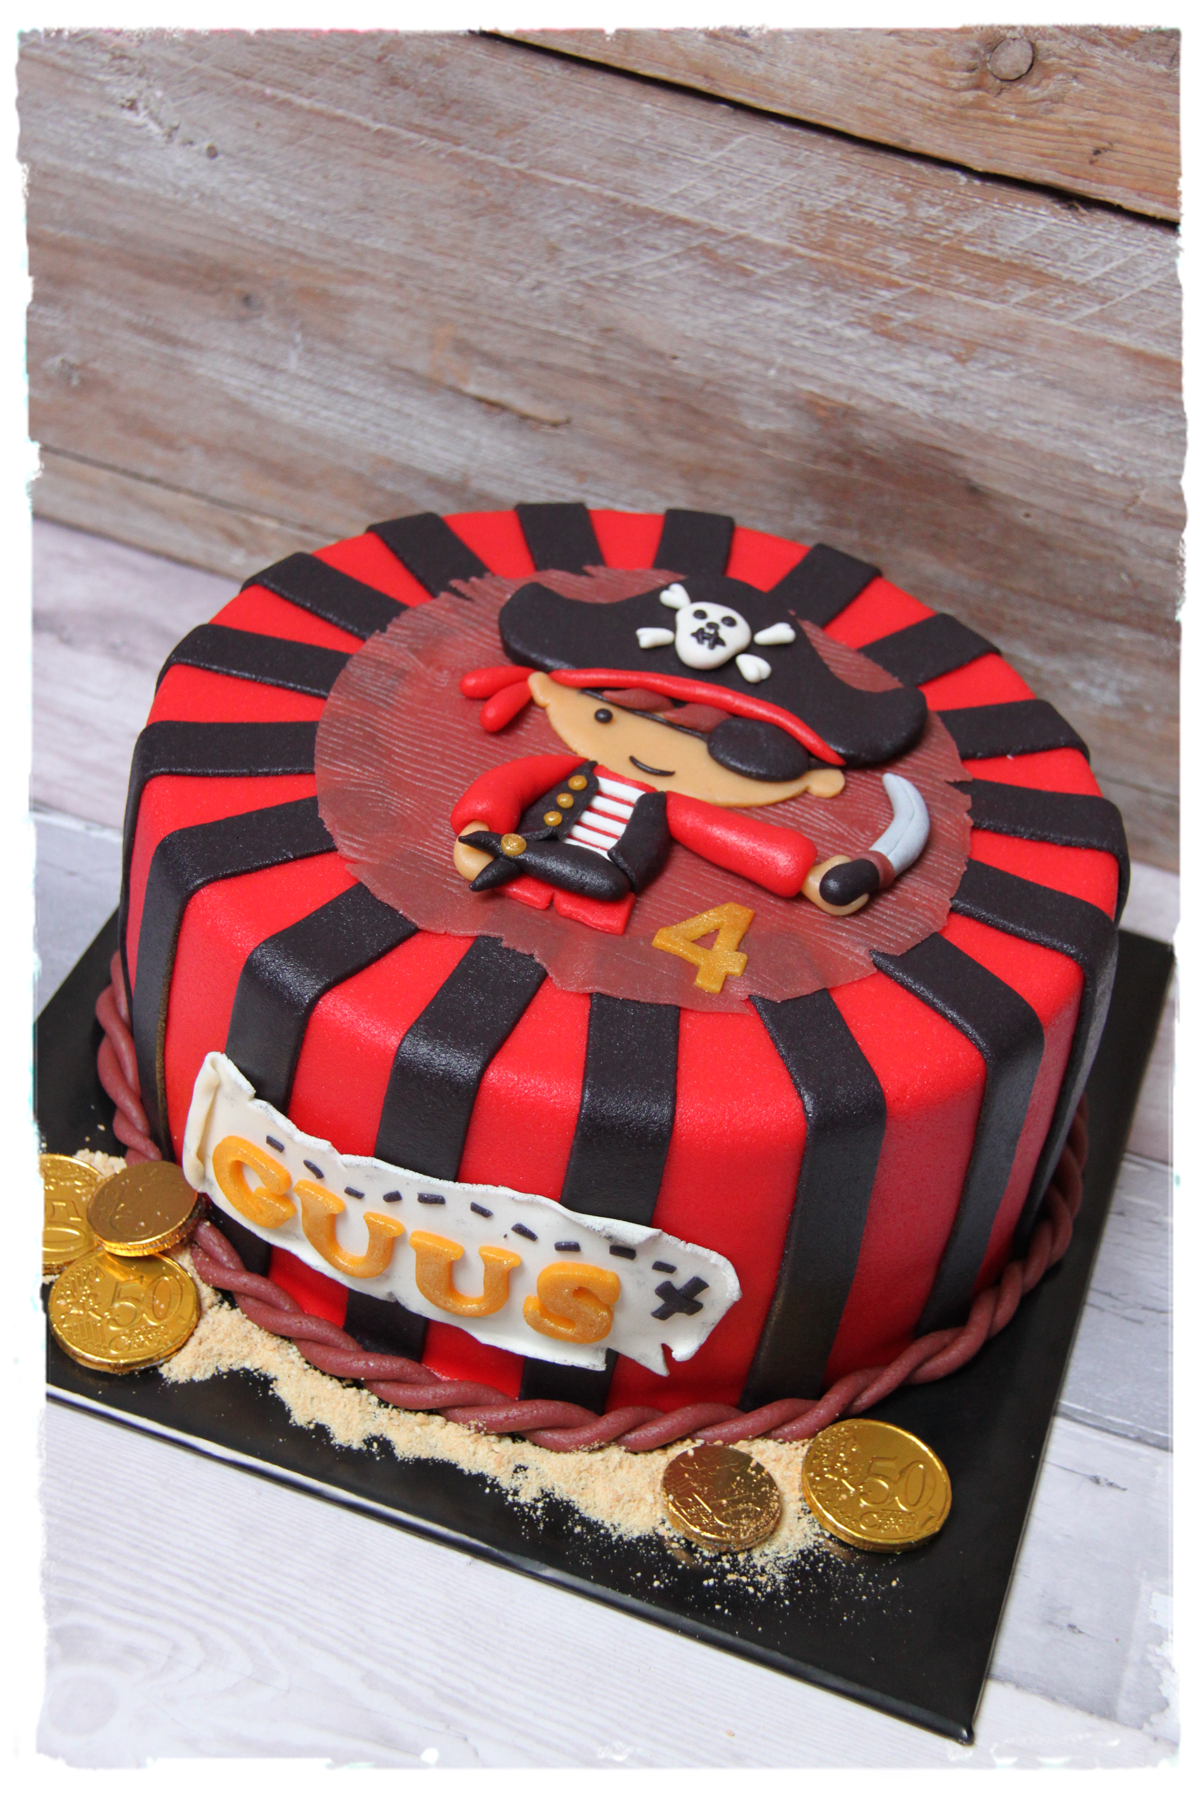 Einfacher Fondant Kuchen Pirate Cake Piratentaart Made By Simplysweet Nl Fimo